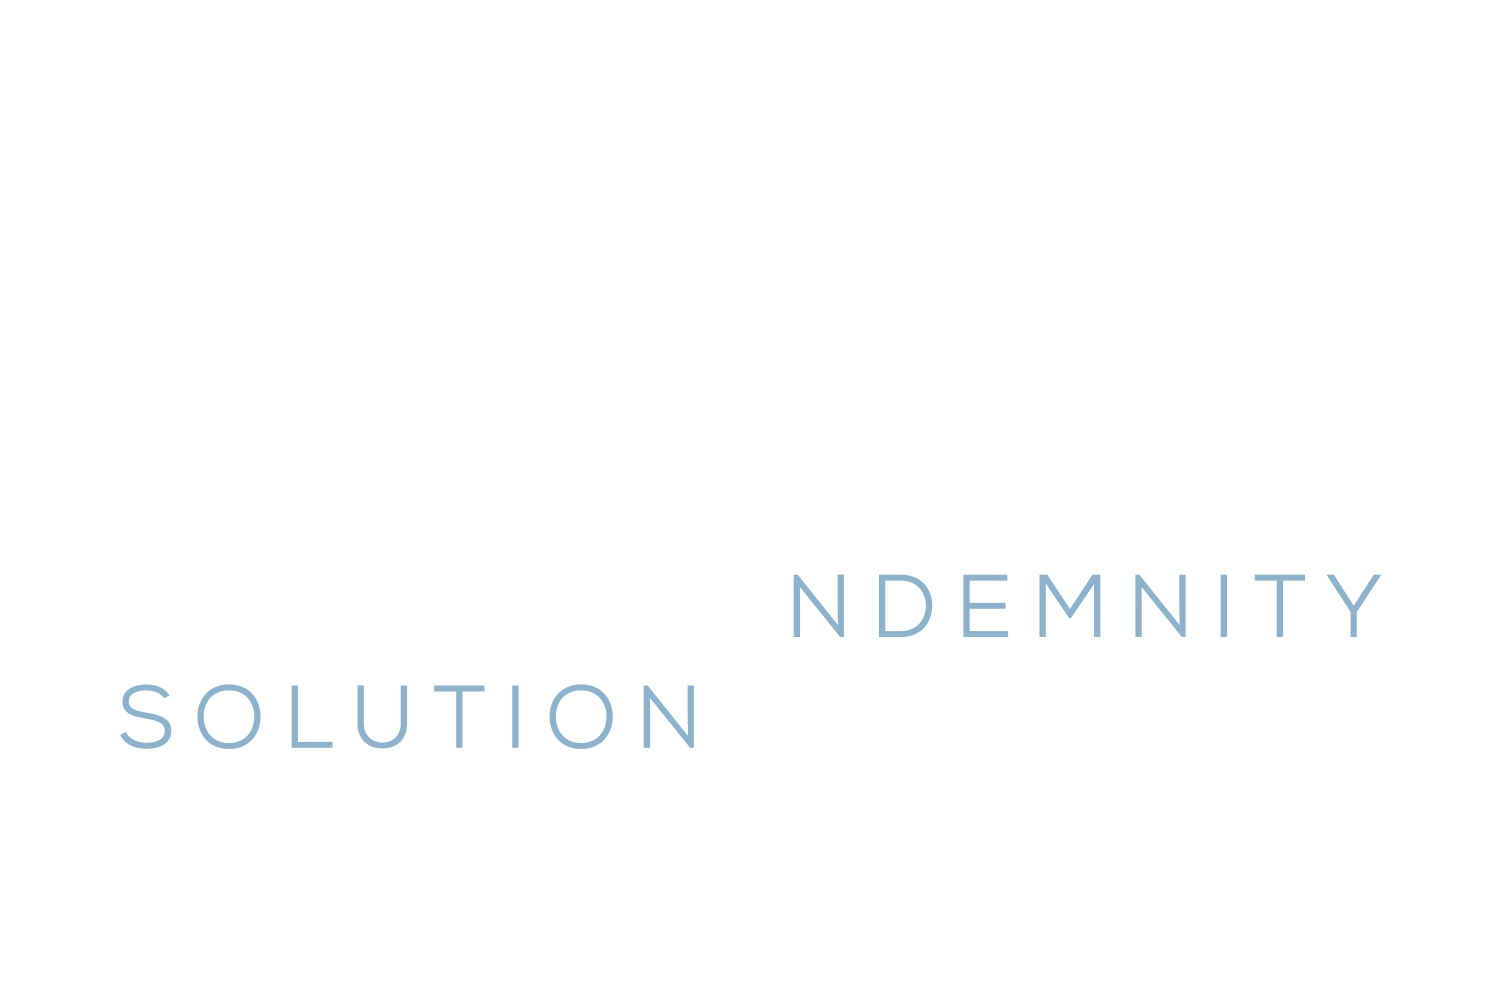 Light & Legal